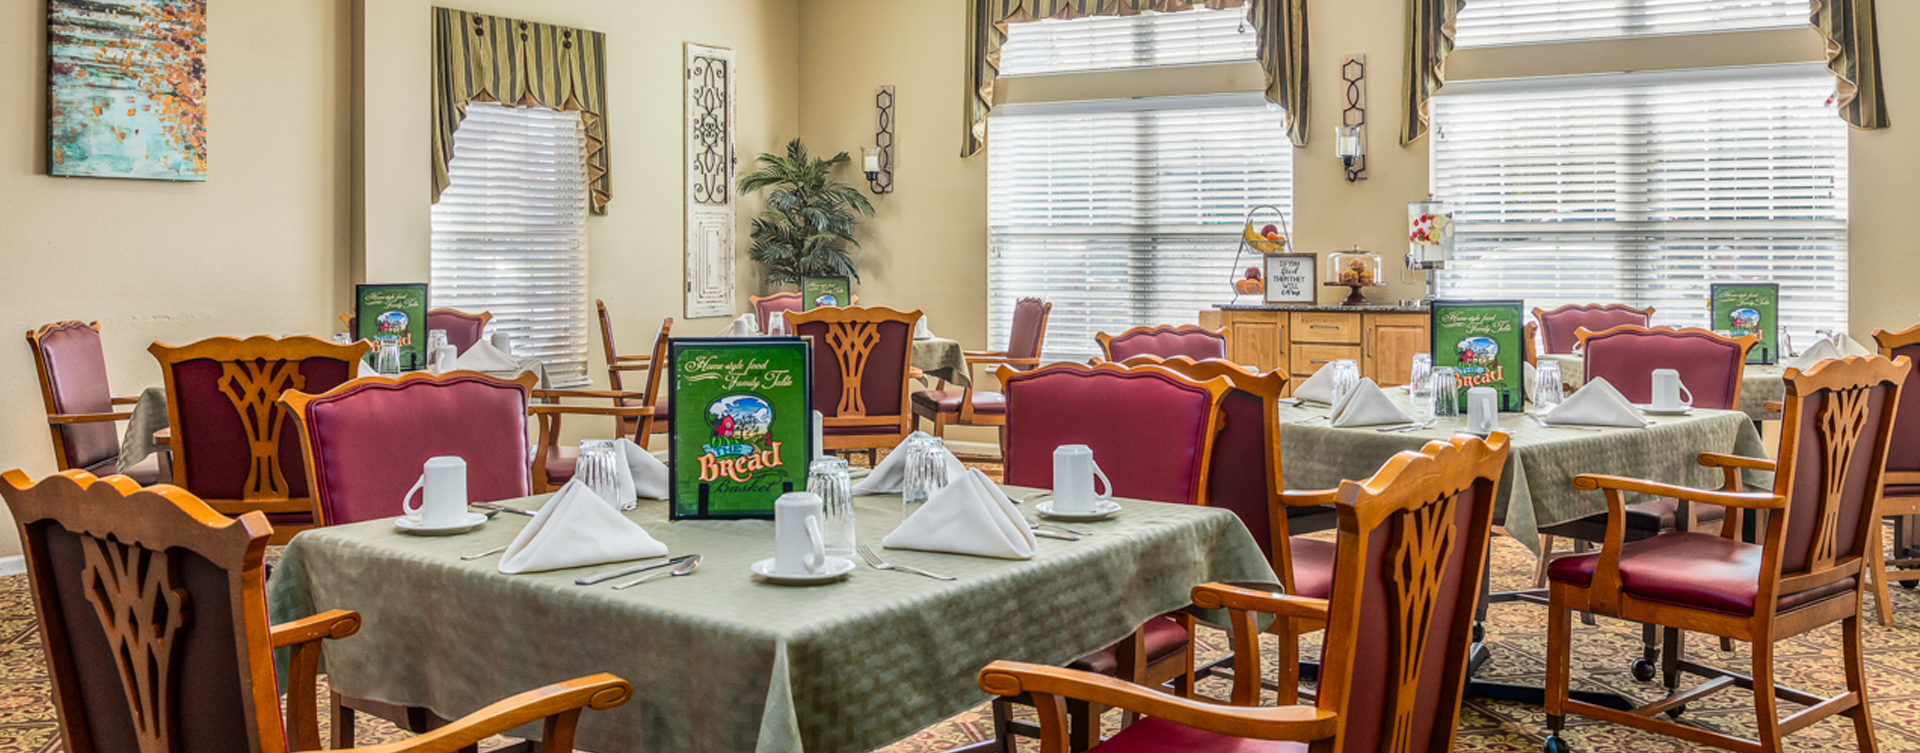 Enjoy restaurant -style meals served three times a day in our dining room at Bickford of Fort Dodge